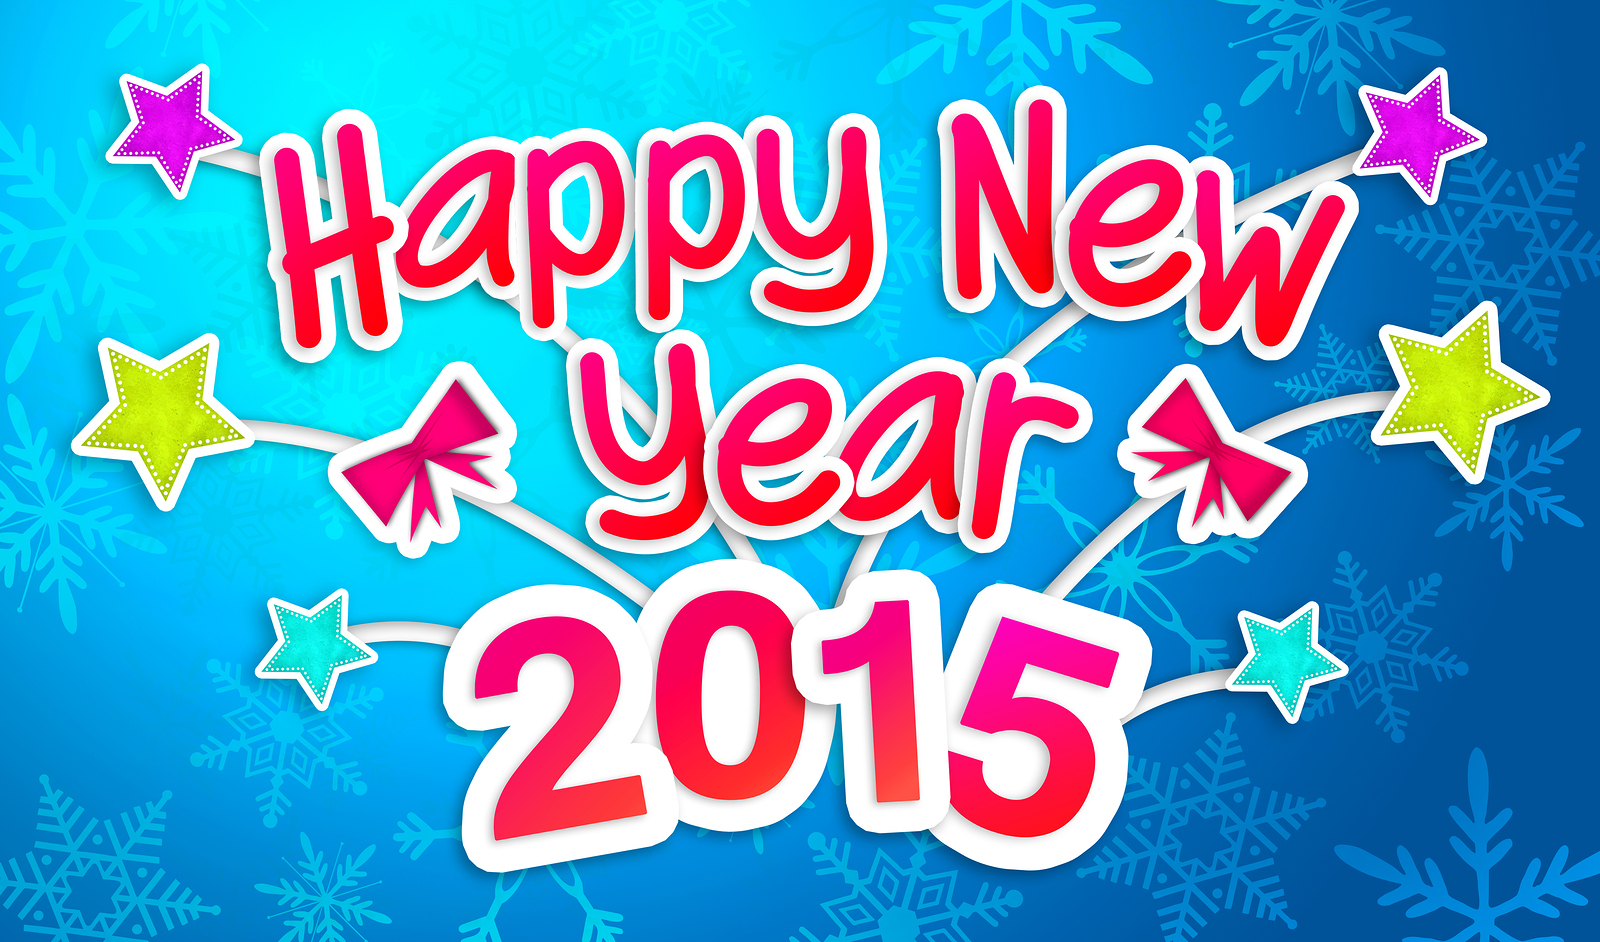 Happy New Year 2015 Images   Happy New Year 2015 1600x942